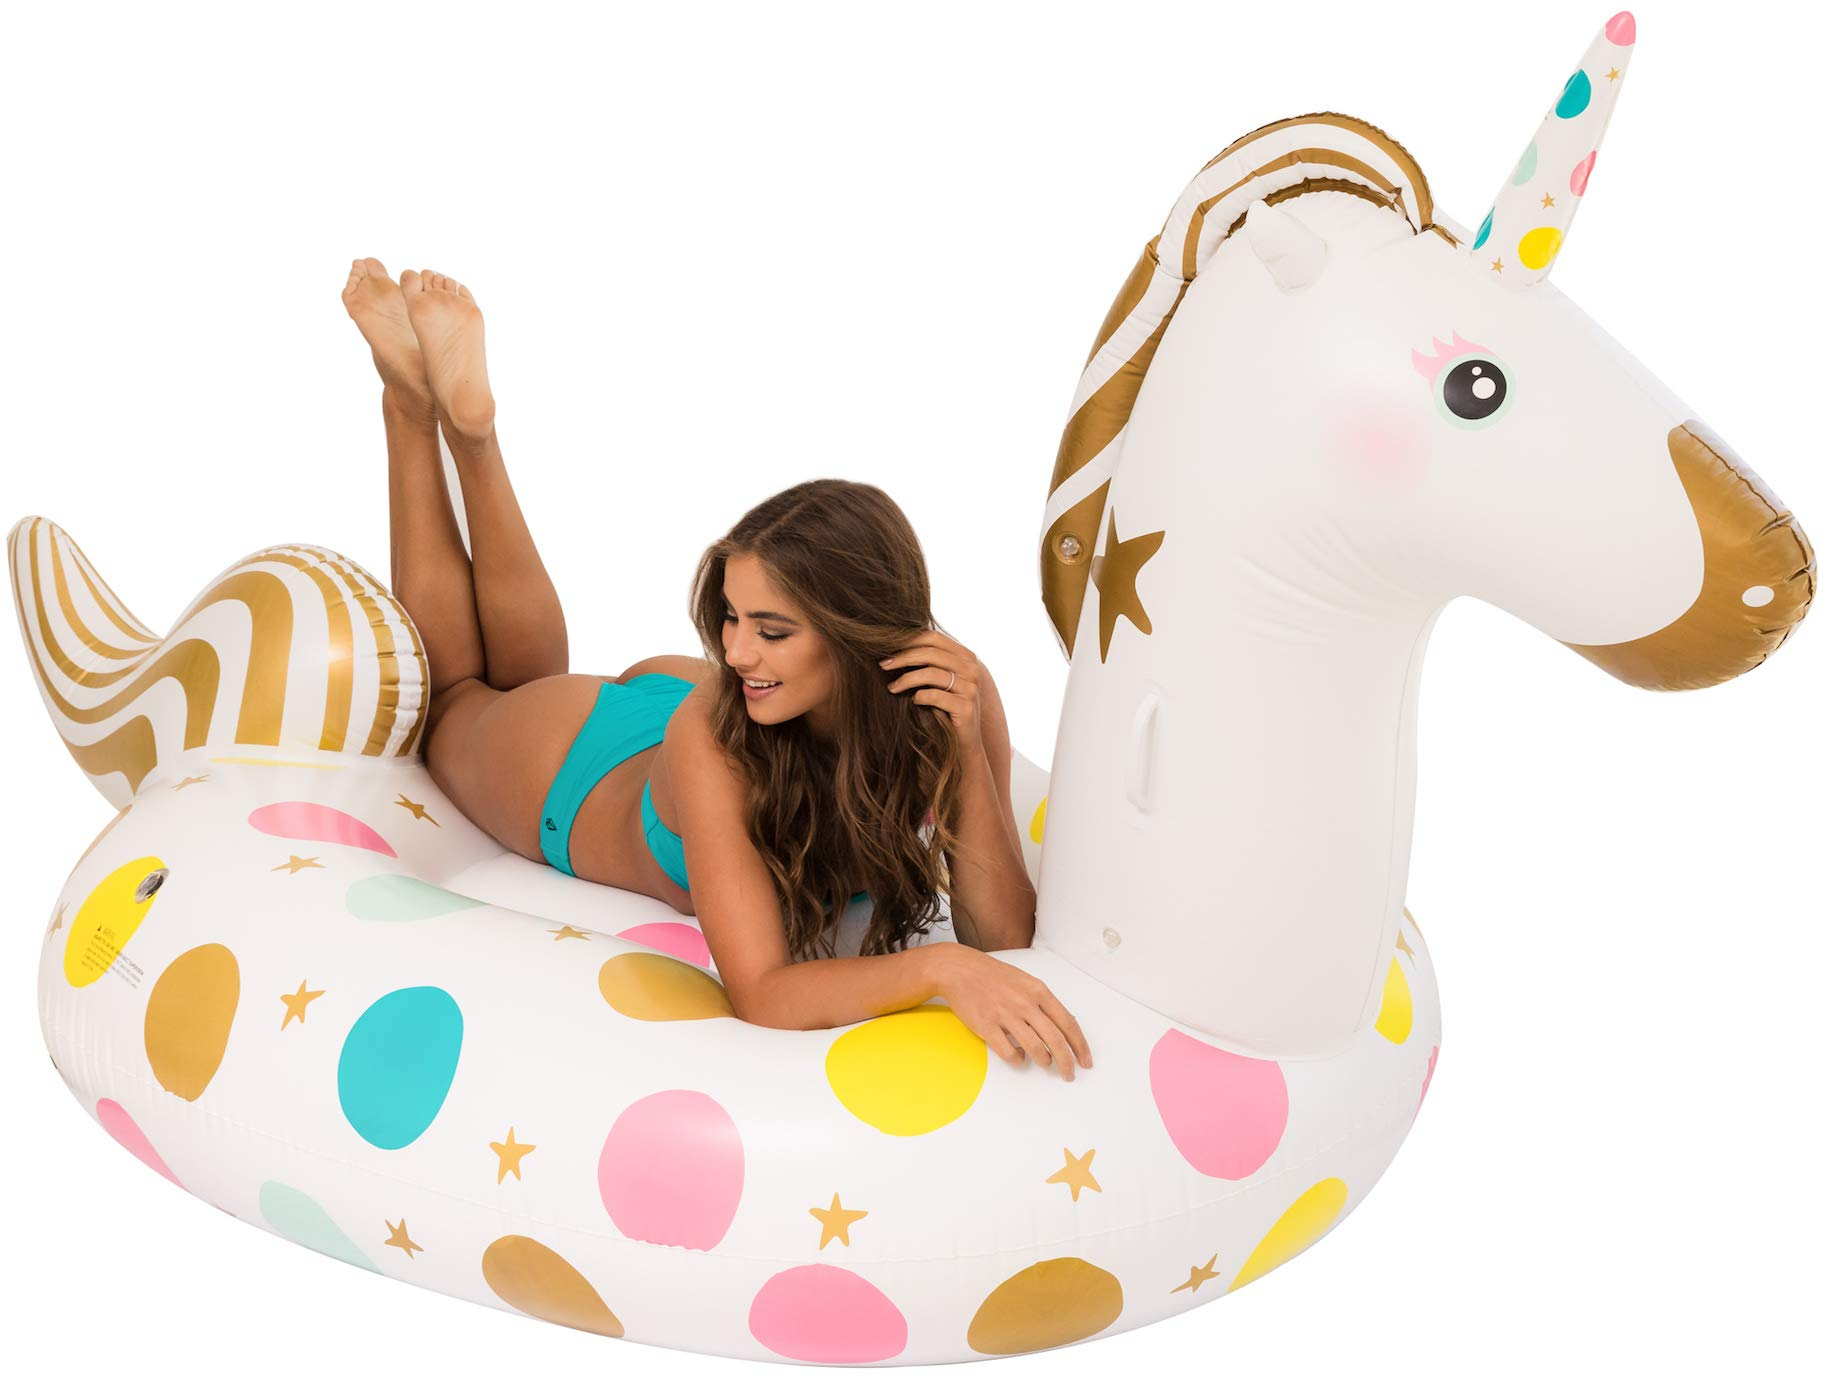 Unicorn Pool Float - Giant 107 x 44 x 55 Inches Inflatable Giant Unicorn Float Swimming Pool River Raft Float Unicorn… 3